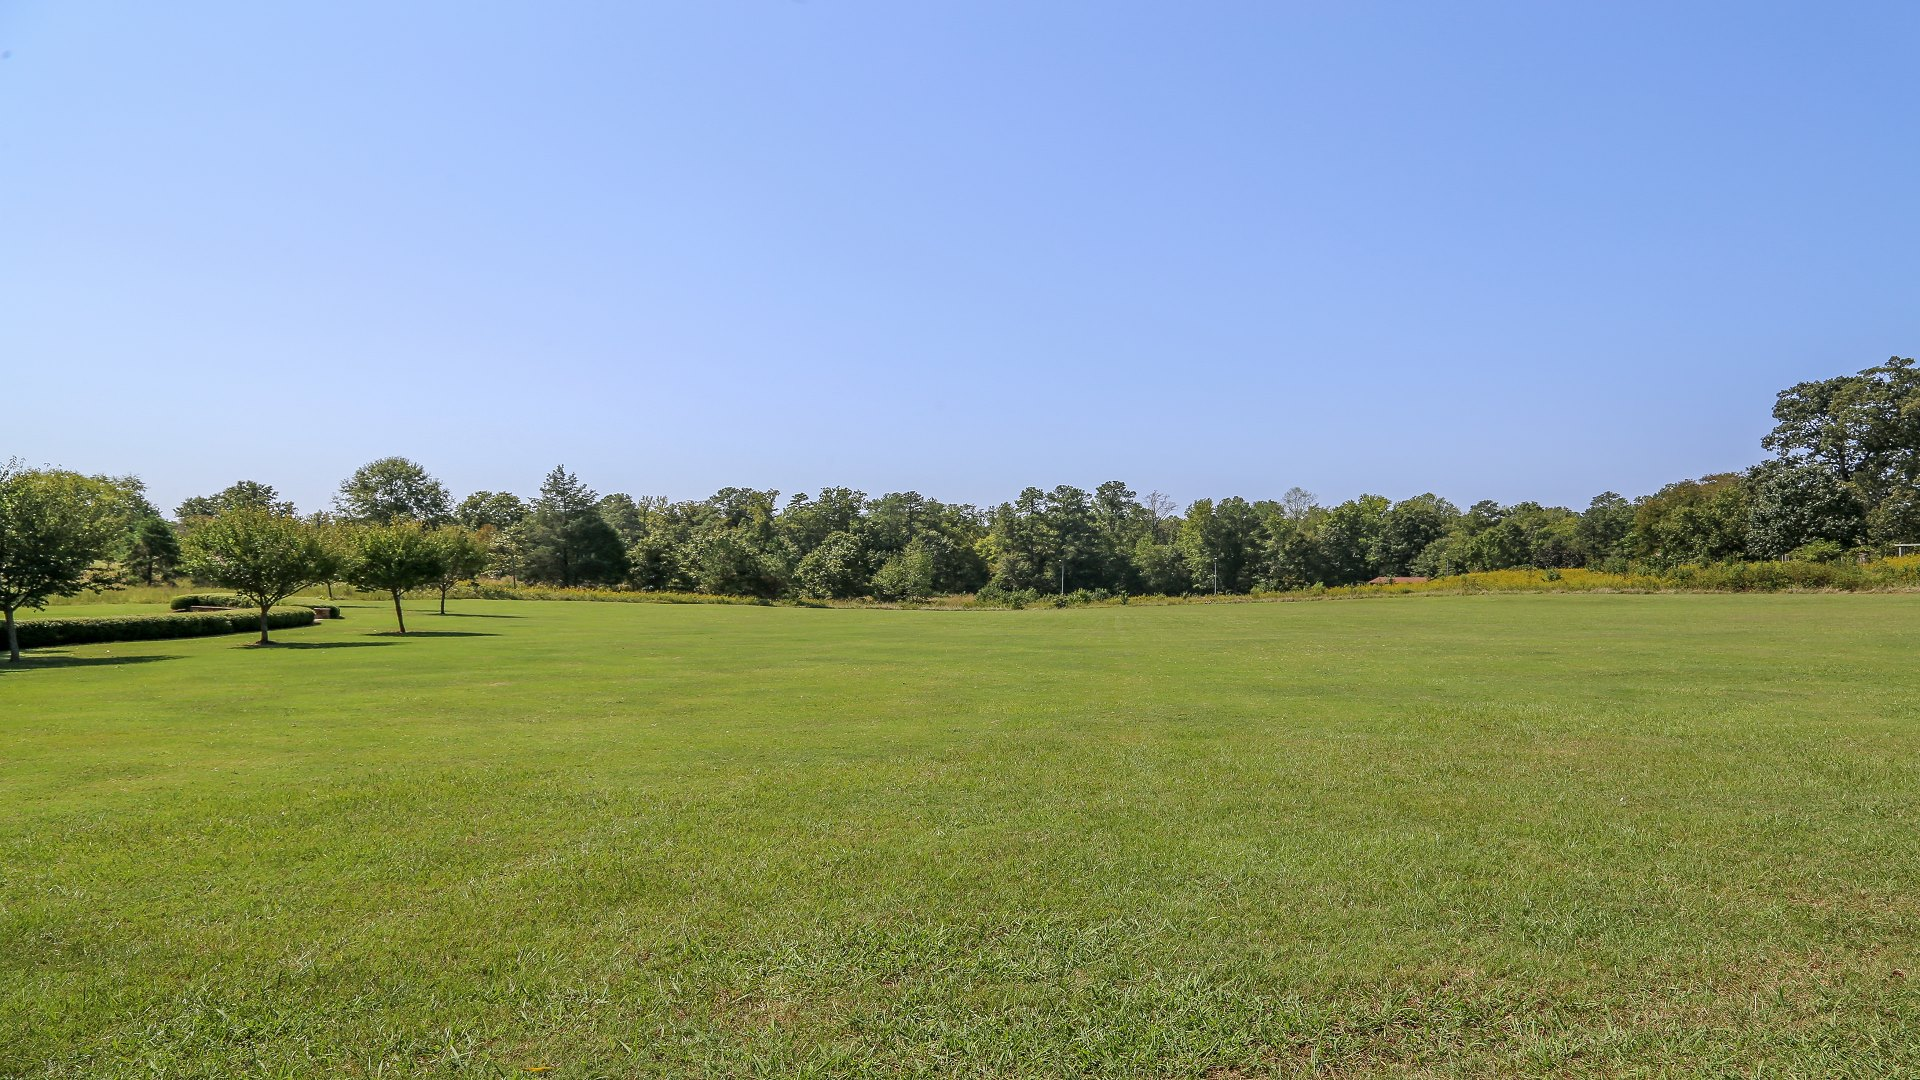 A large open field located near the large picnic shelter